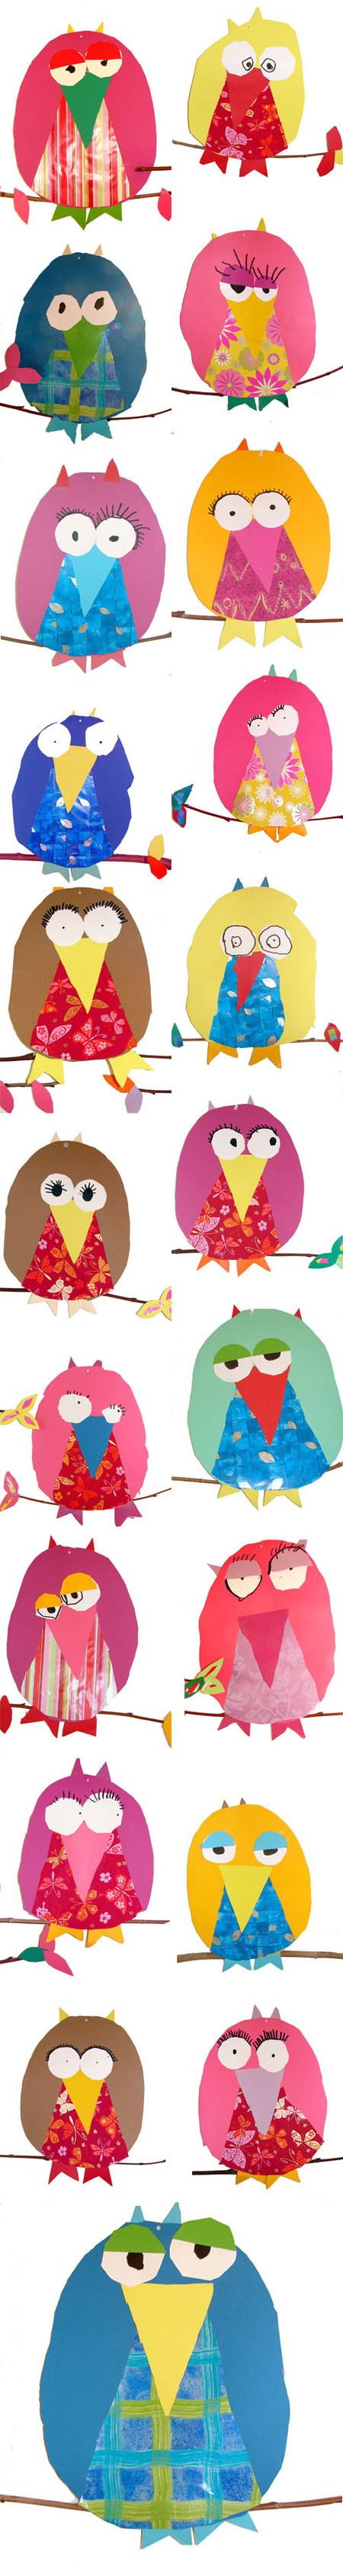 From @Jenny She - Children's craft table: Provide owl shapes and templates of the eyes and beak to trace and cut out on their own. @Libby Slaughter = you must do this (or I will with the wee cherubs/owlets)